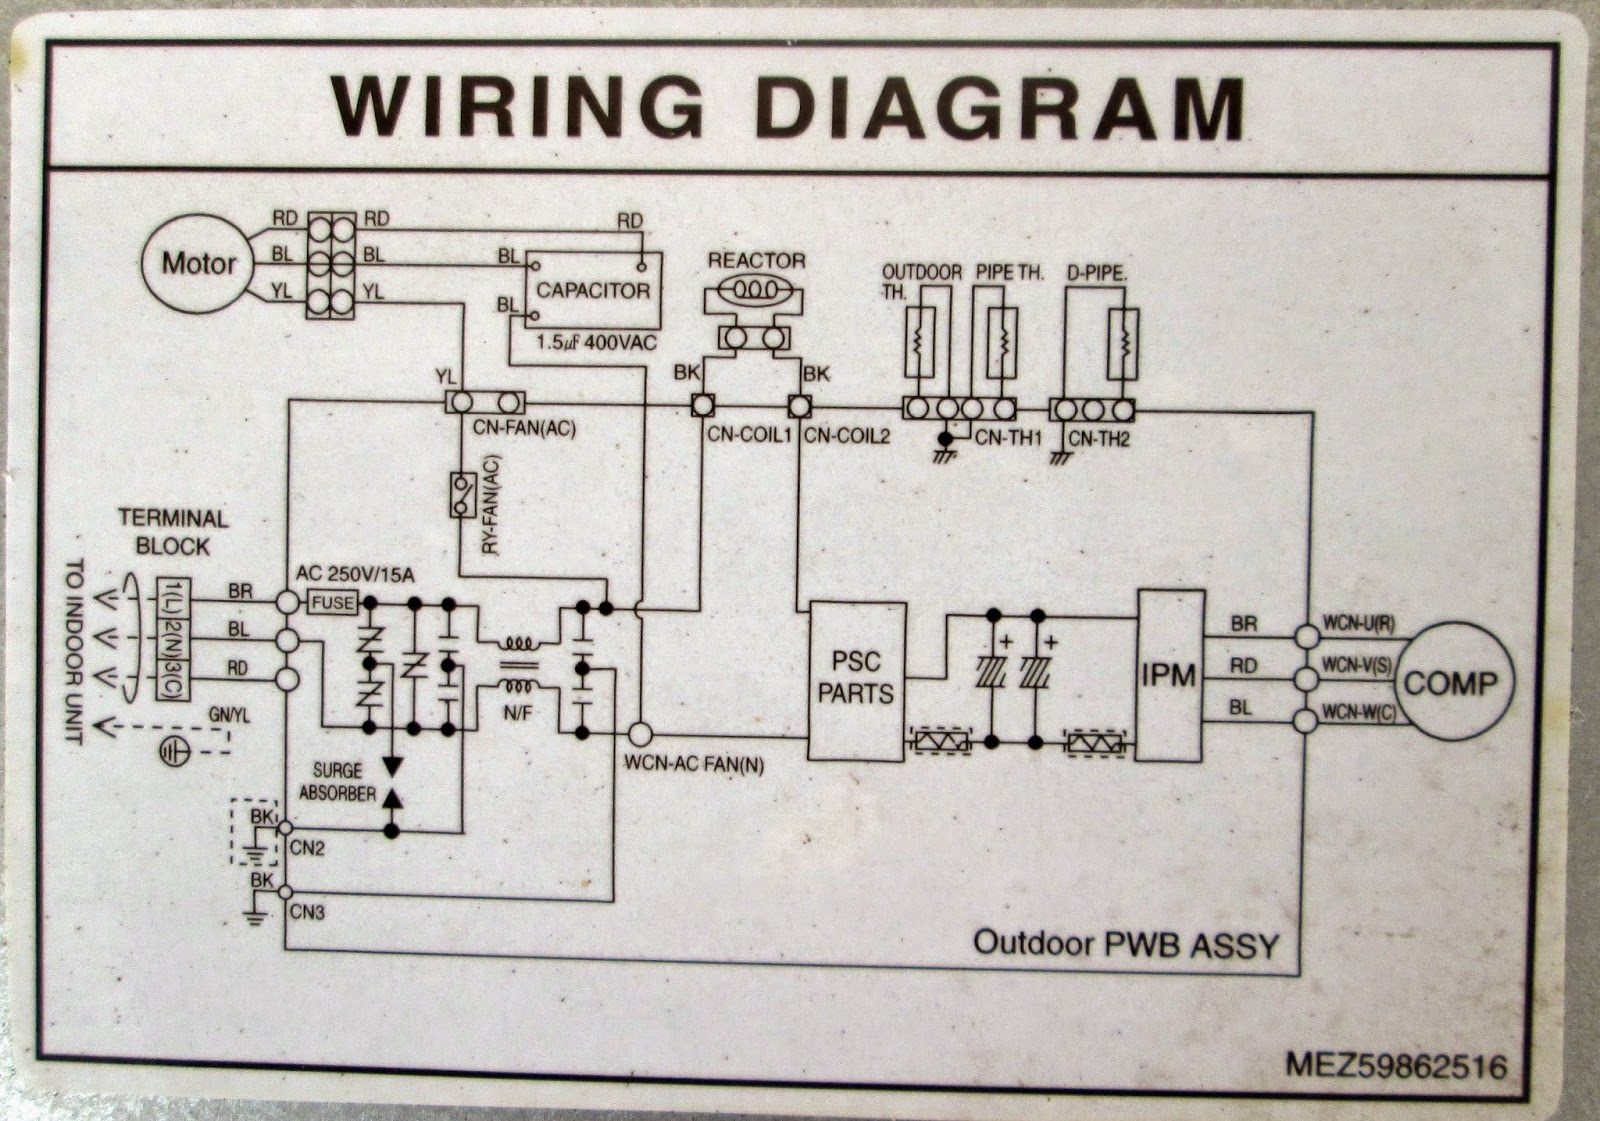 lg ac wiring diagram wiring diagramdiagram split ac wiring diagram progresifdiagram split unit wiring diagram air conditioning system diagram diagram split